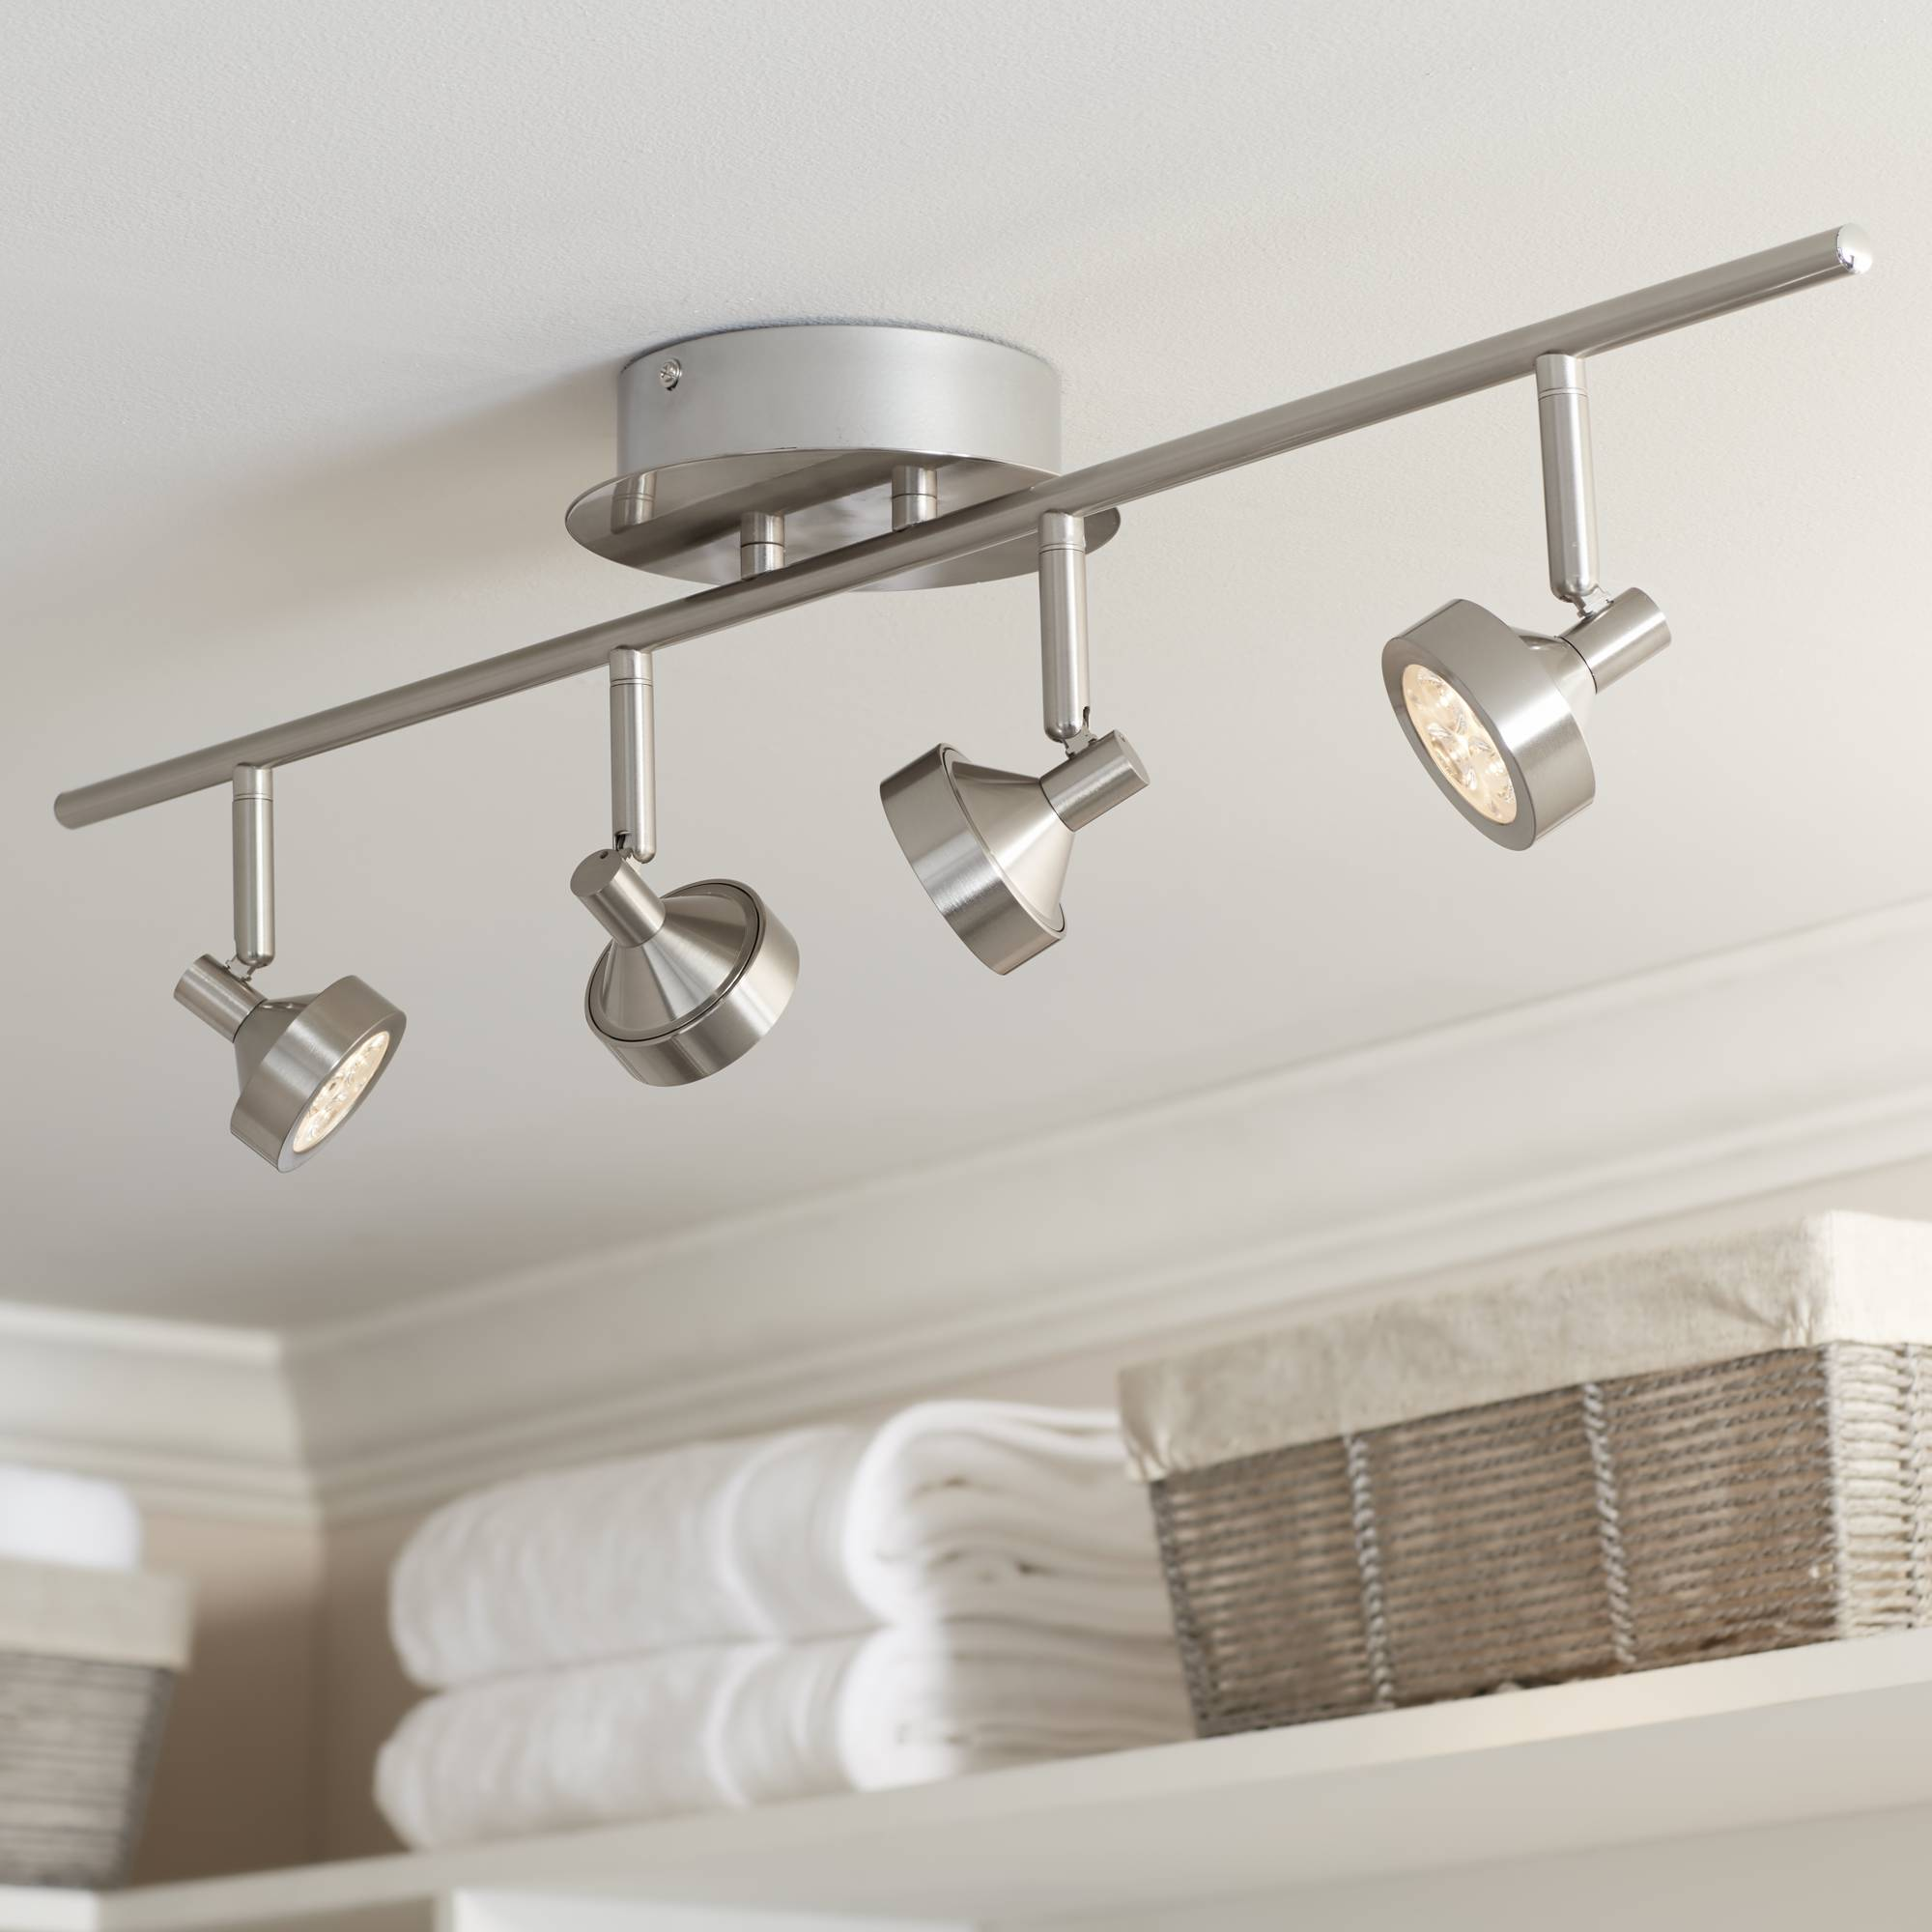 Pro track tilden 4 light brushed steel led ceiling light